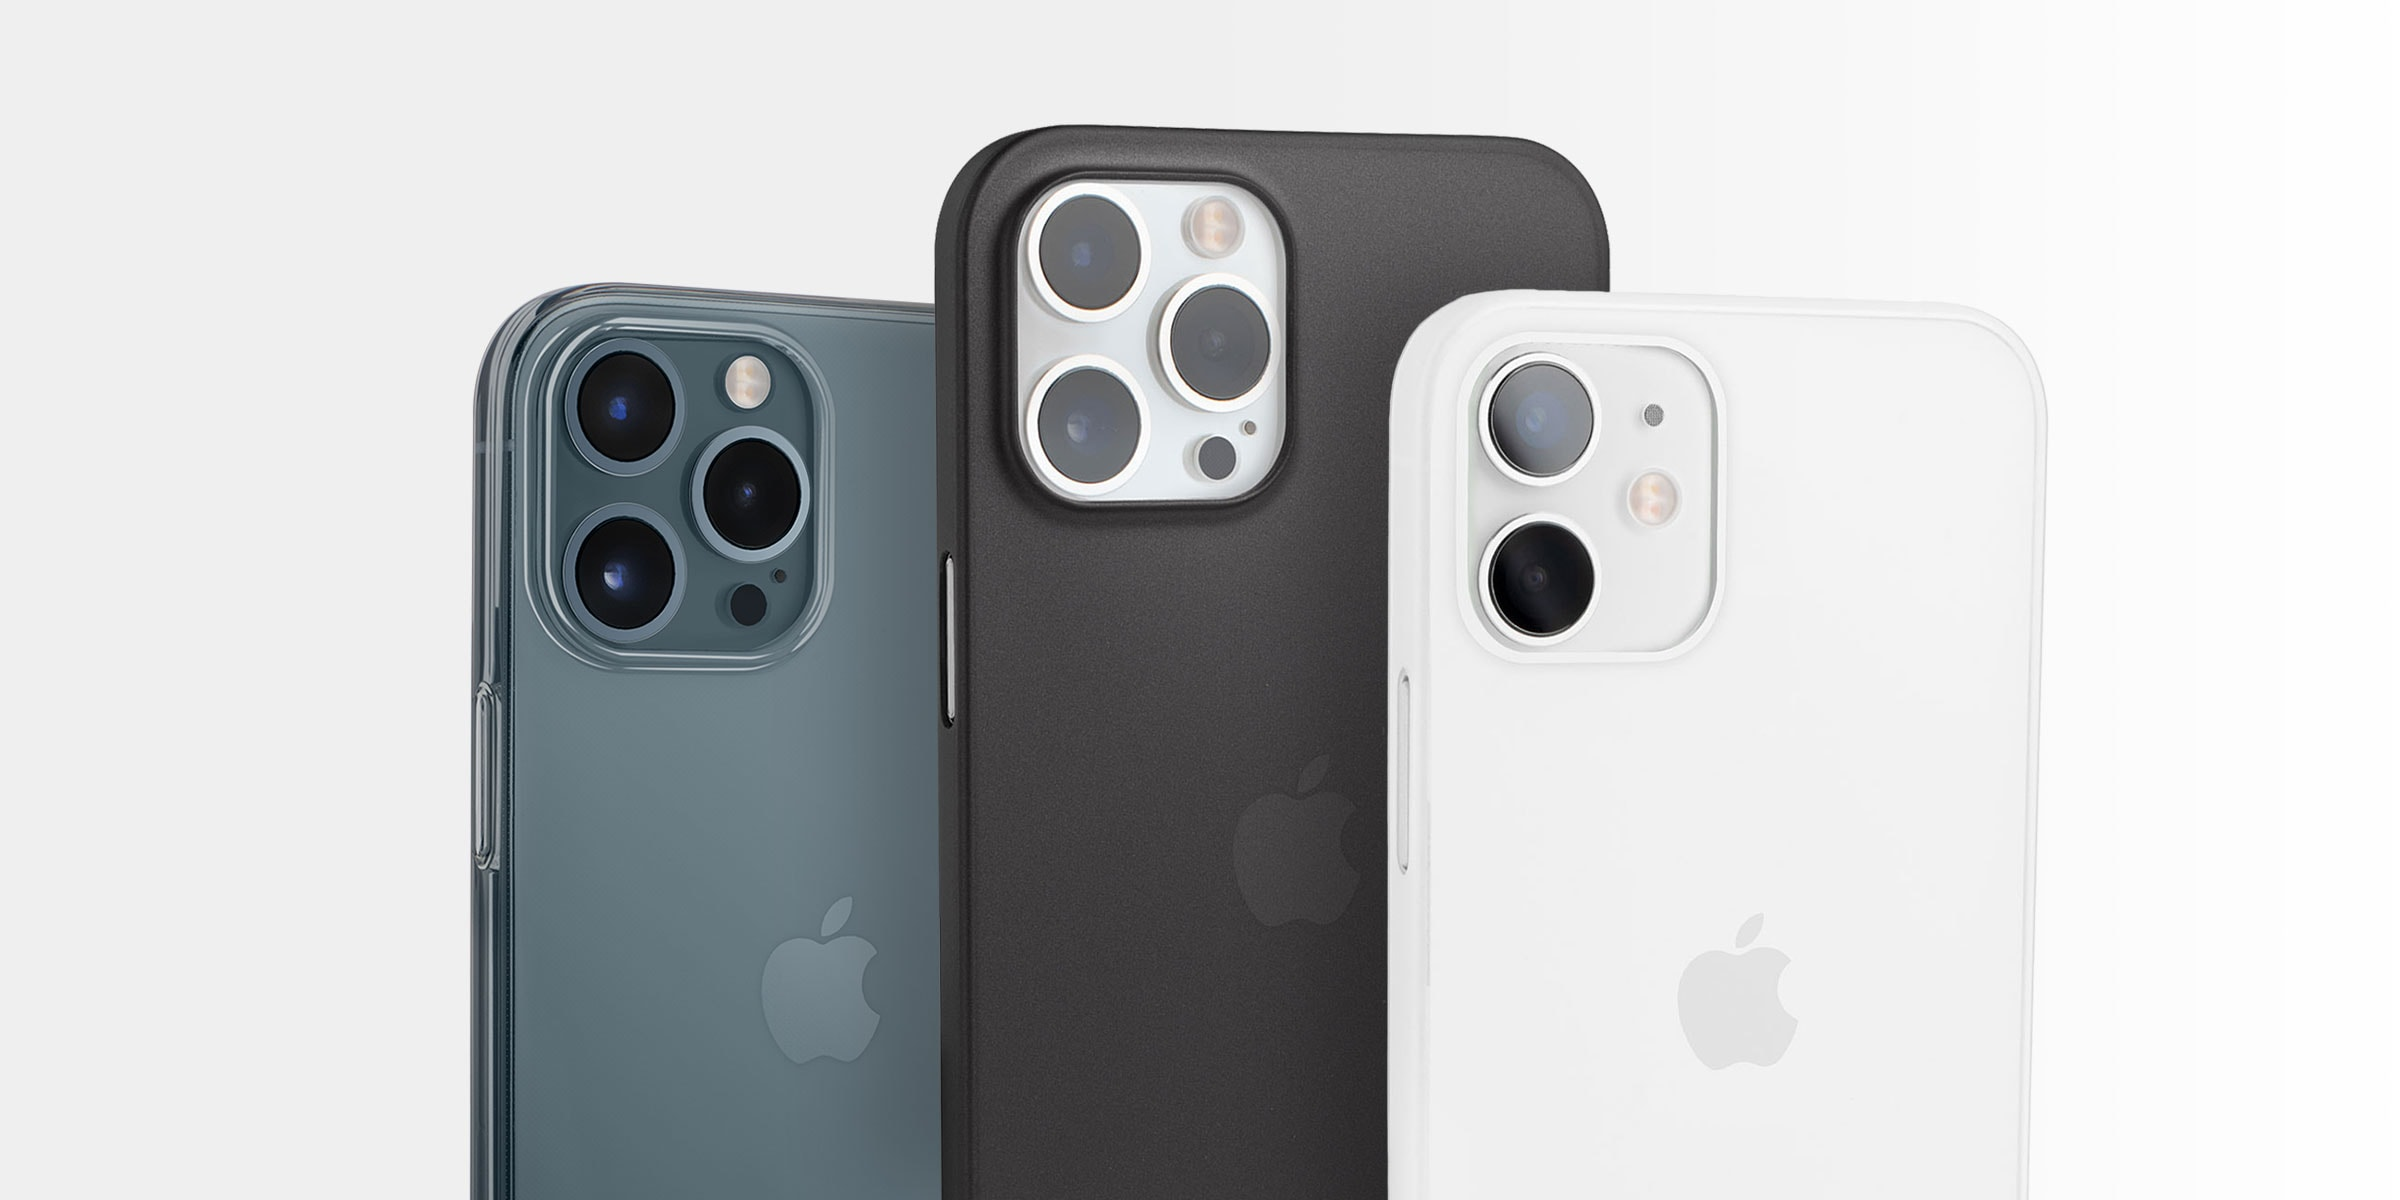 Totallee's thin iPhone 12 cases feature a raised lip that helps protect the cameras.